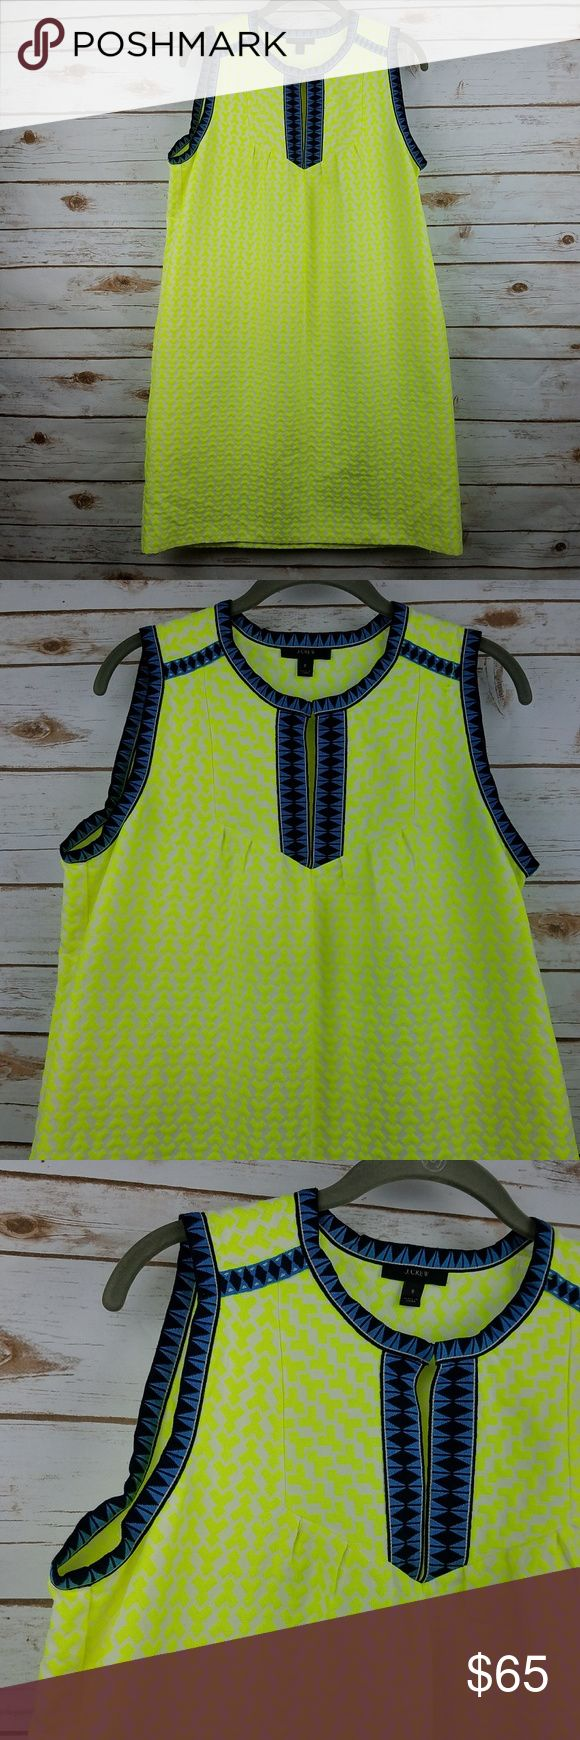 "J. Crew Arrow-Print Shift Dress Women's J Crew Arrow-Print Shift Dress Gorgeous neon yellow with embroidery around trim Style #A5361 Pre-owned in good condition. No stains, rips or holes.   Tag Size: 8 pit to pit: 20"" overall length: 36"" *all measurements are approximate and taken with the item laying flat. J. Crew Dresses"